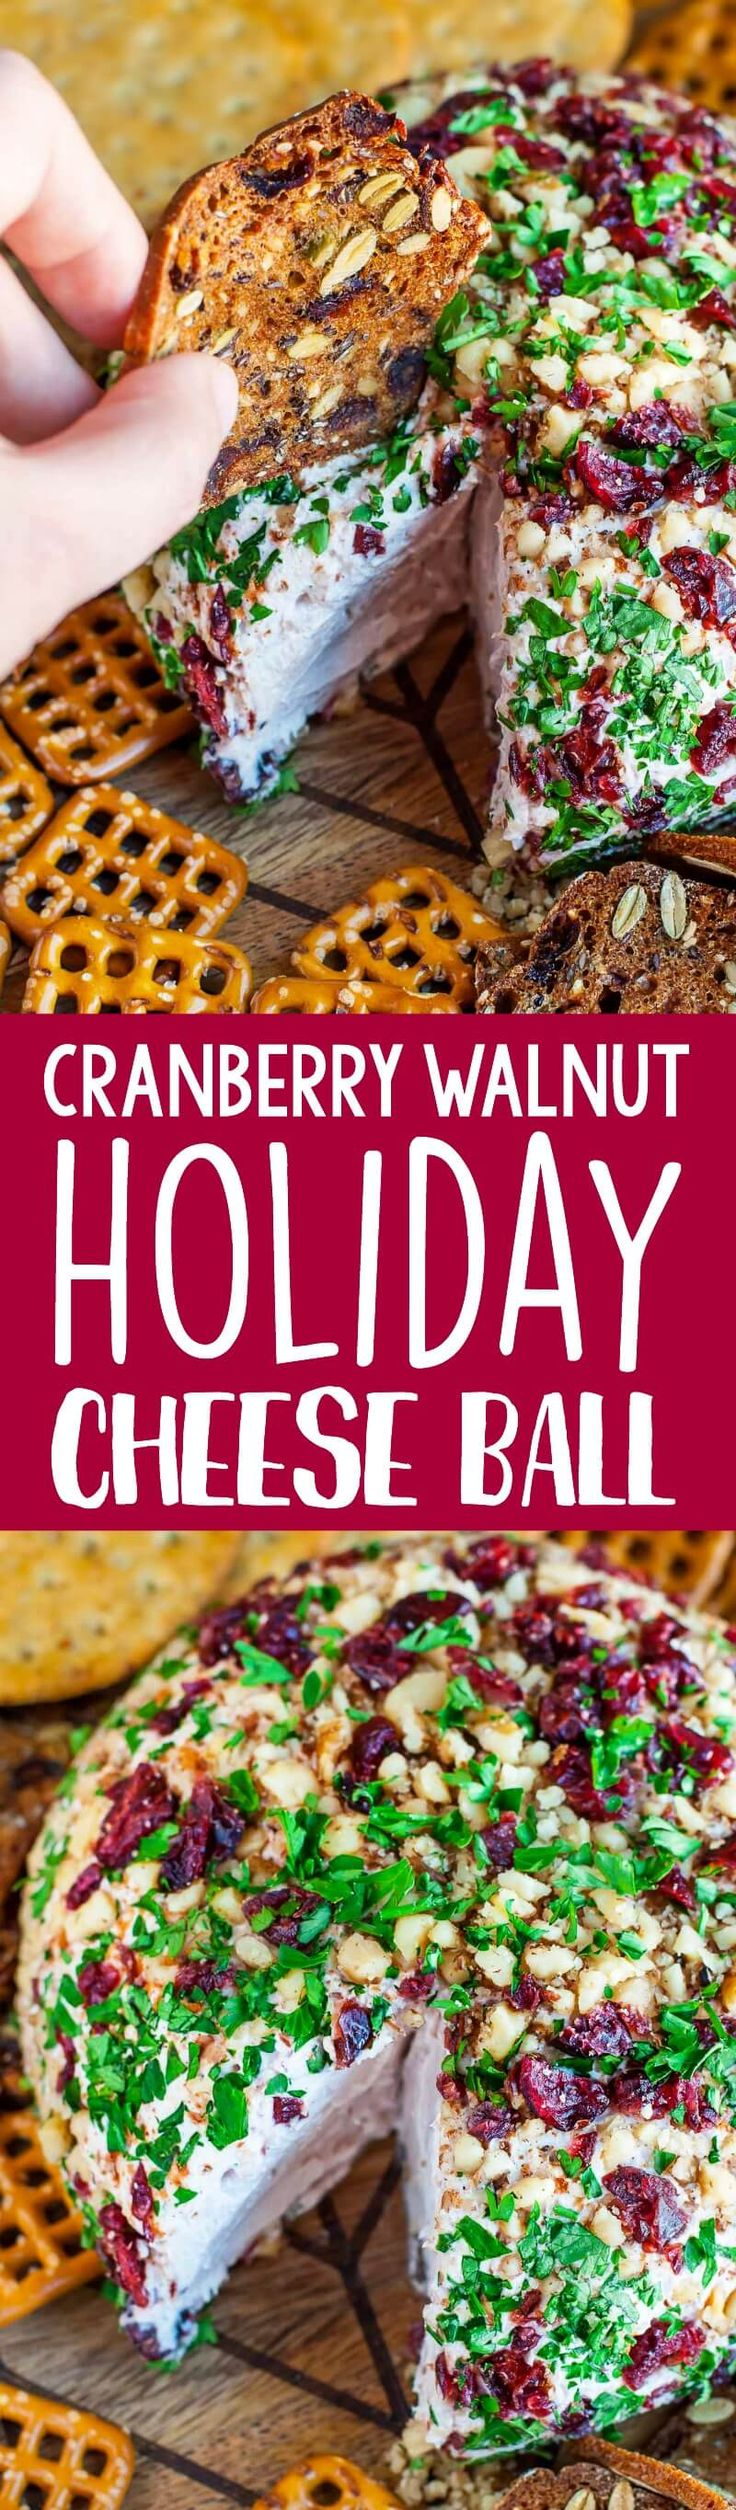 Snag some leftover cranberry sauce and swirl it into this super luxe cranberry walnut holiday cheese ball!